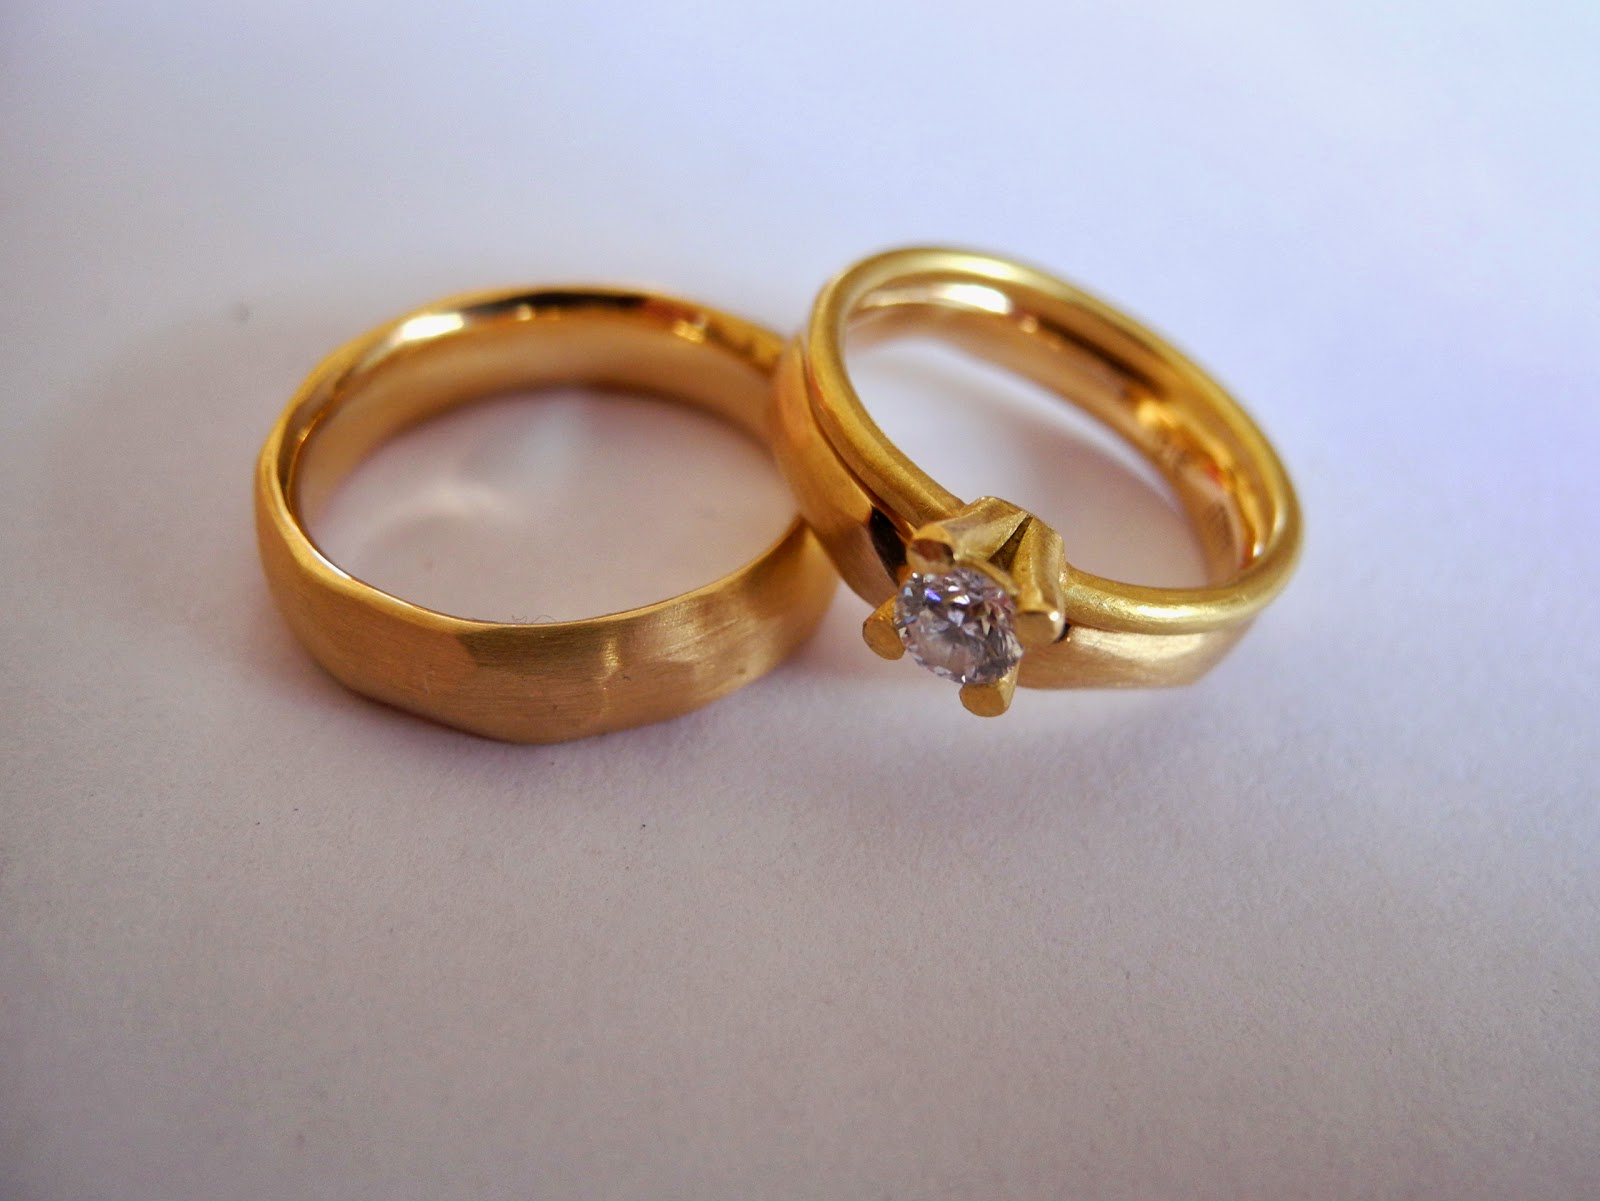 Best Of Wedding Rings for Both Wedding